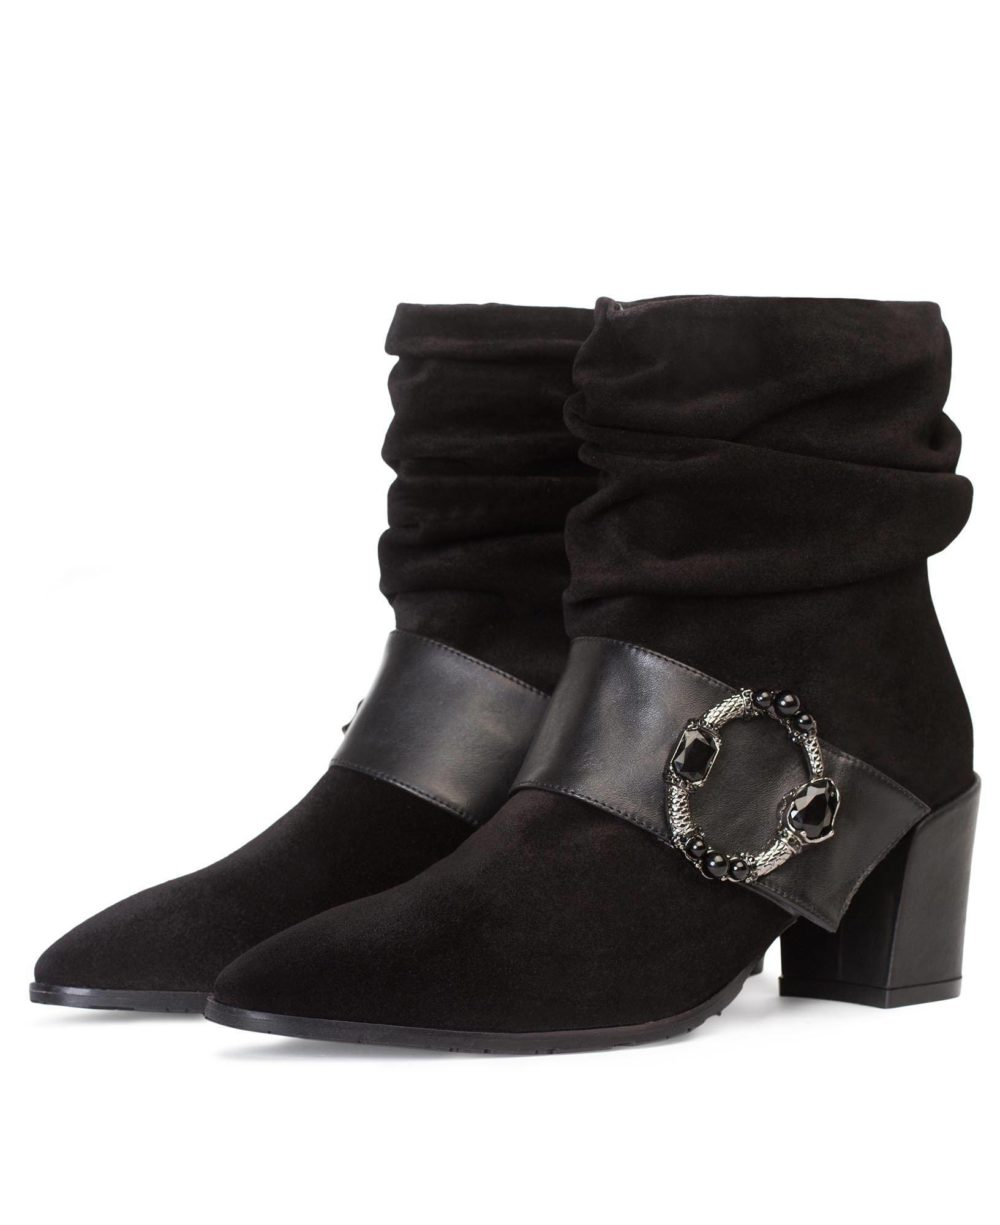 Leather ankle boots Paco Gil - P-3841 Black Velour-Bravo D